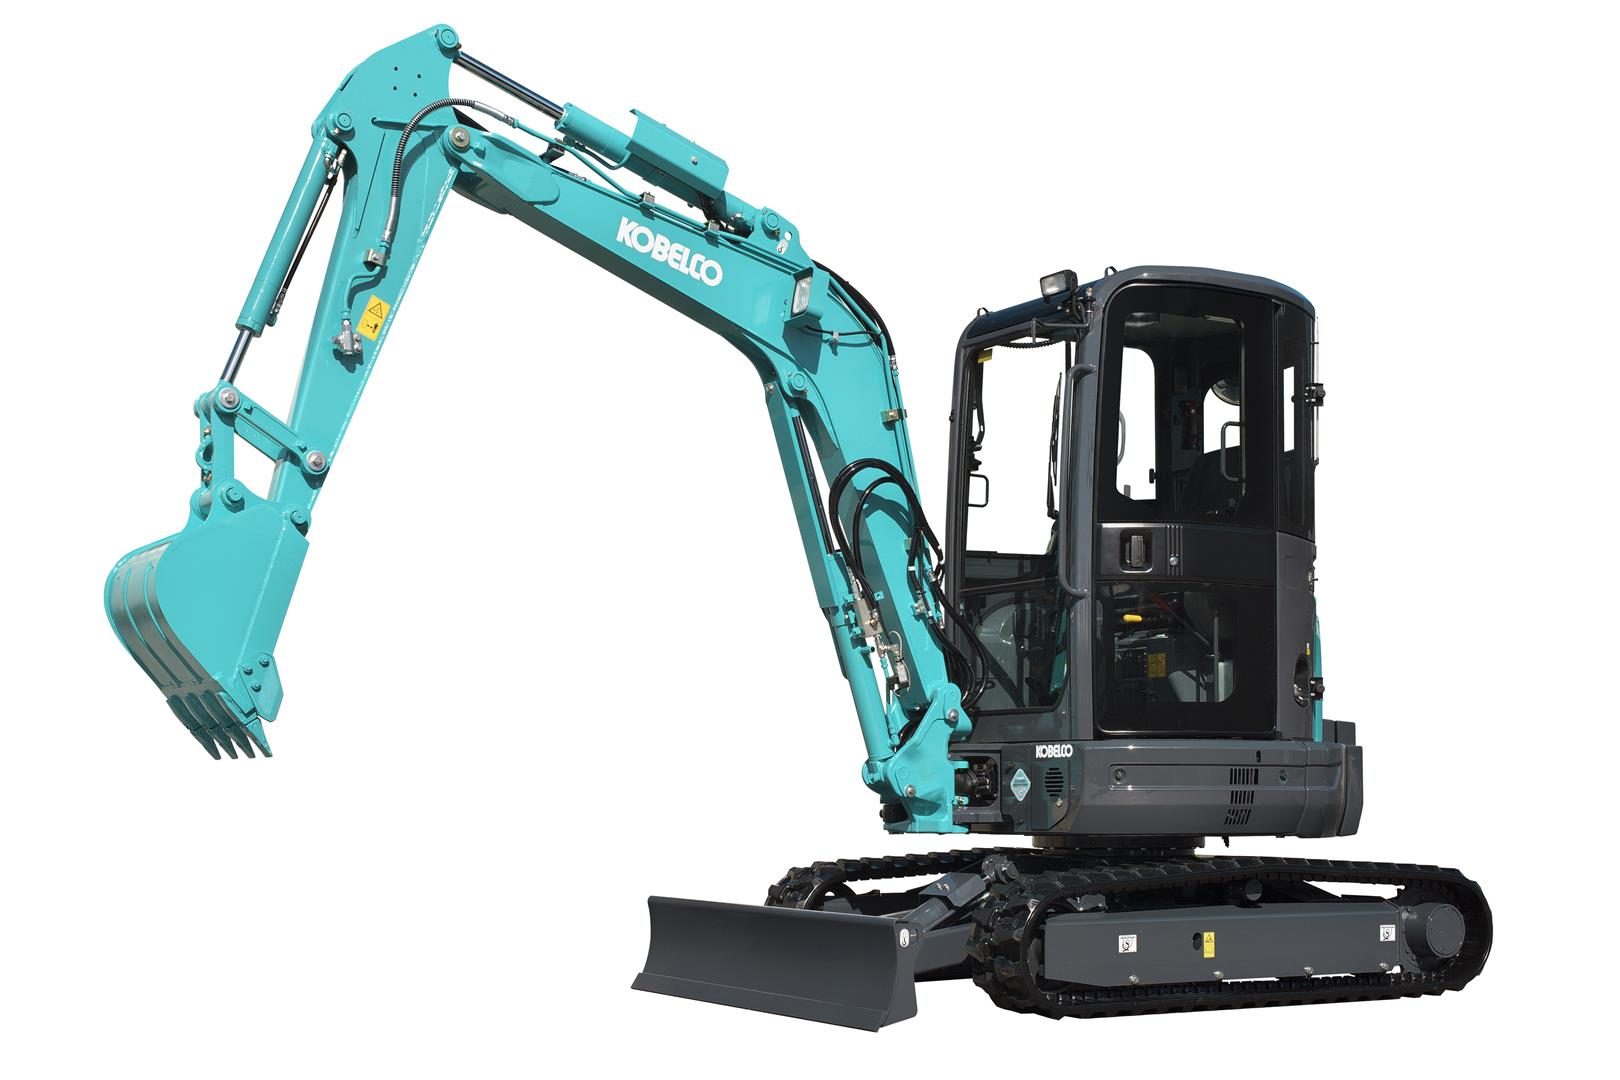 Kobelco Construction Machinery introduces three new mini-excavators